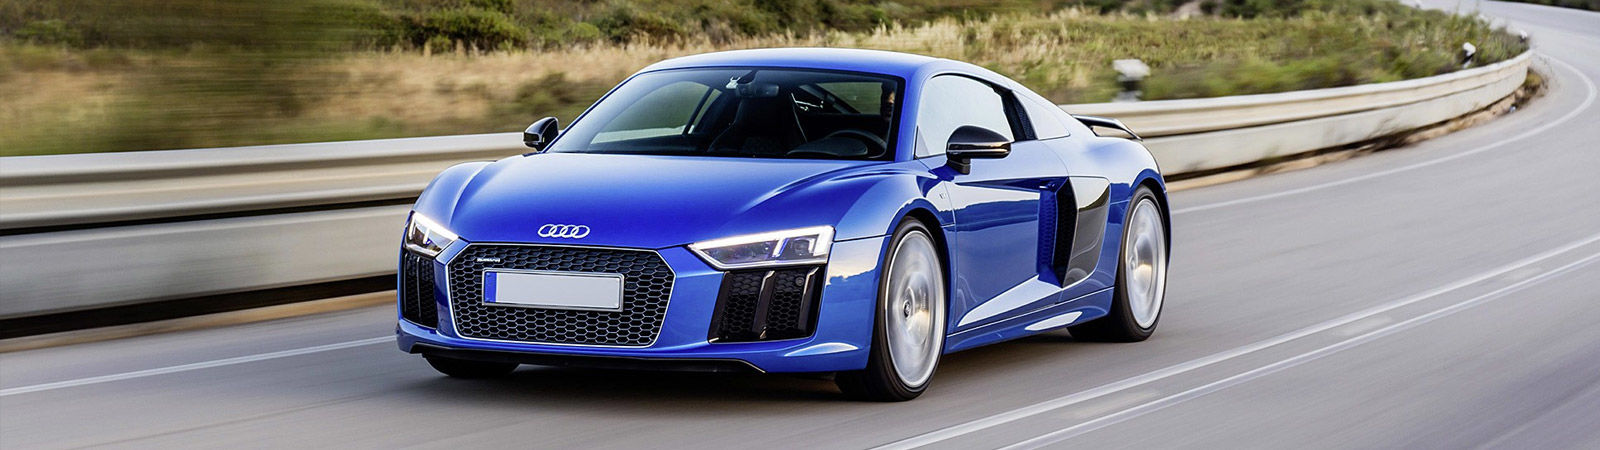 2018 audi r8 v6 price specs and release date carwow. Black Bedroom Furniture Sets. Home Design Ideas